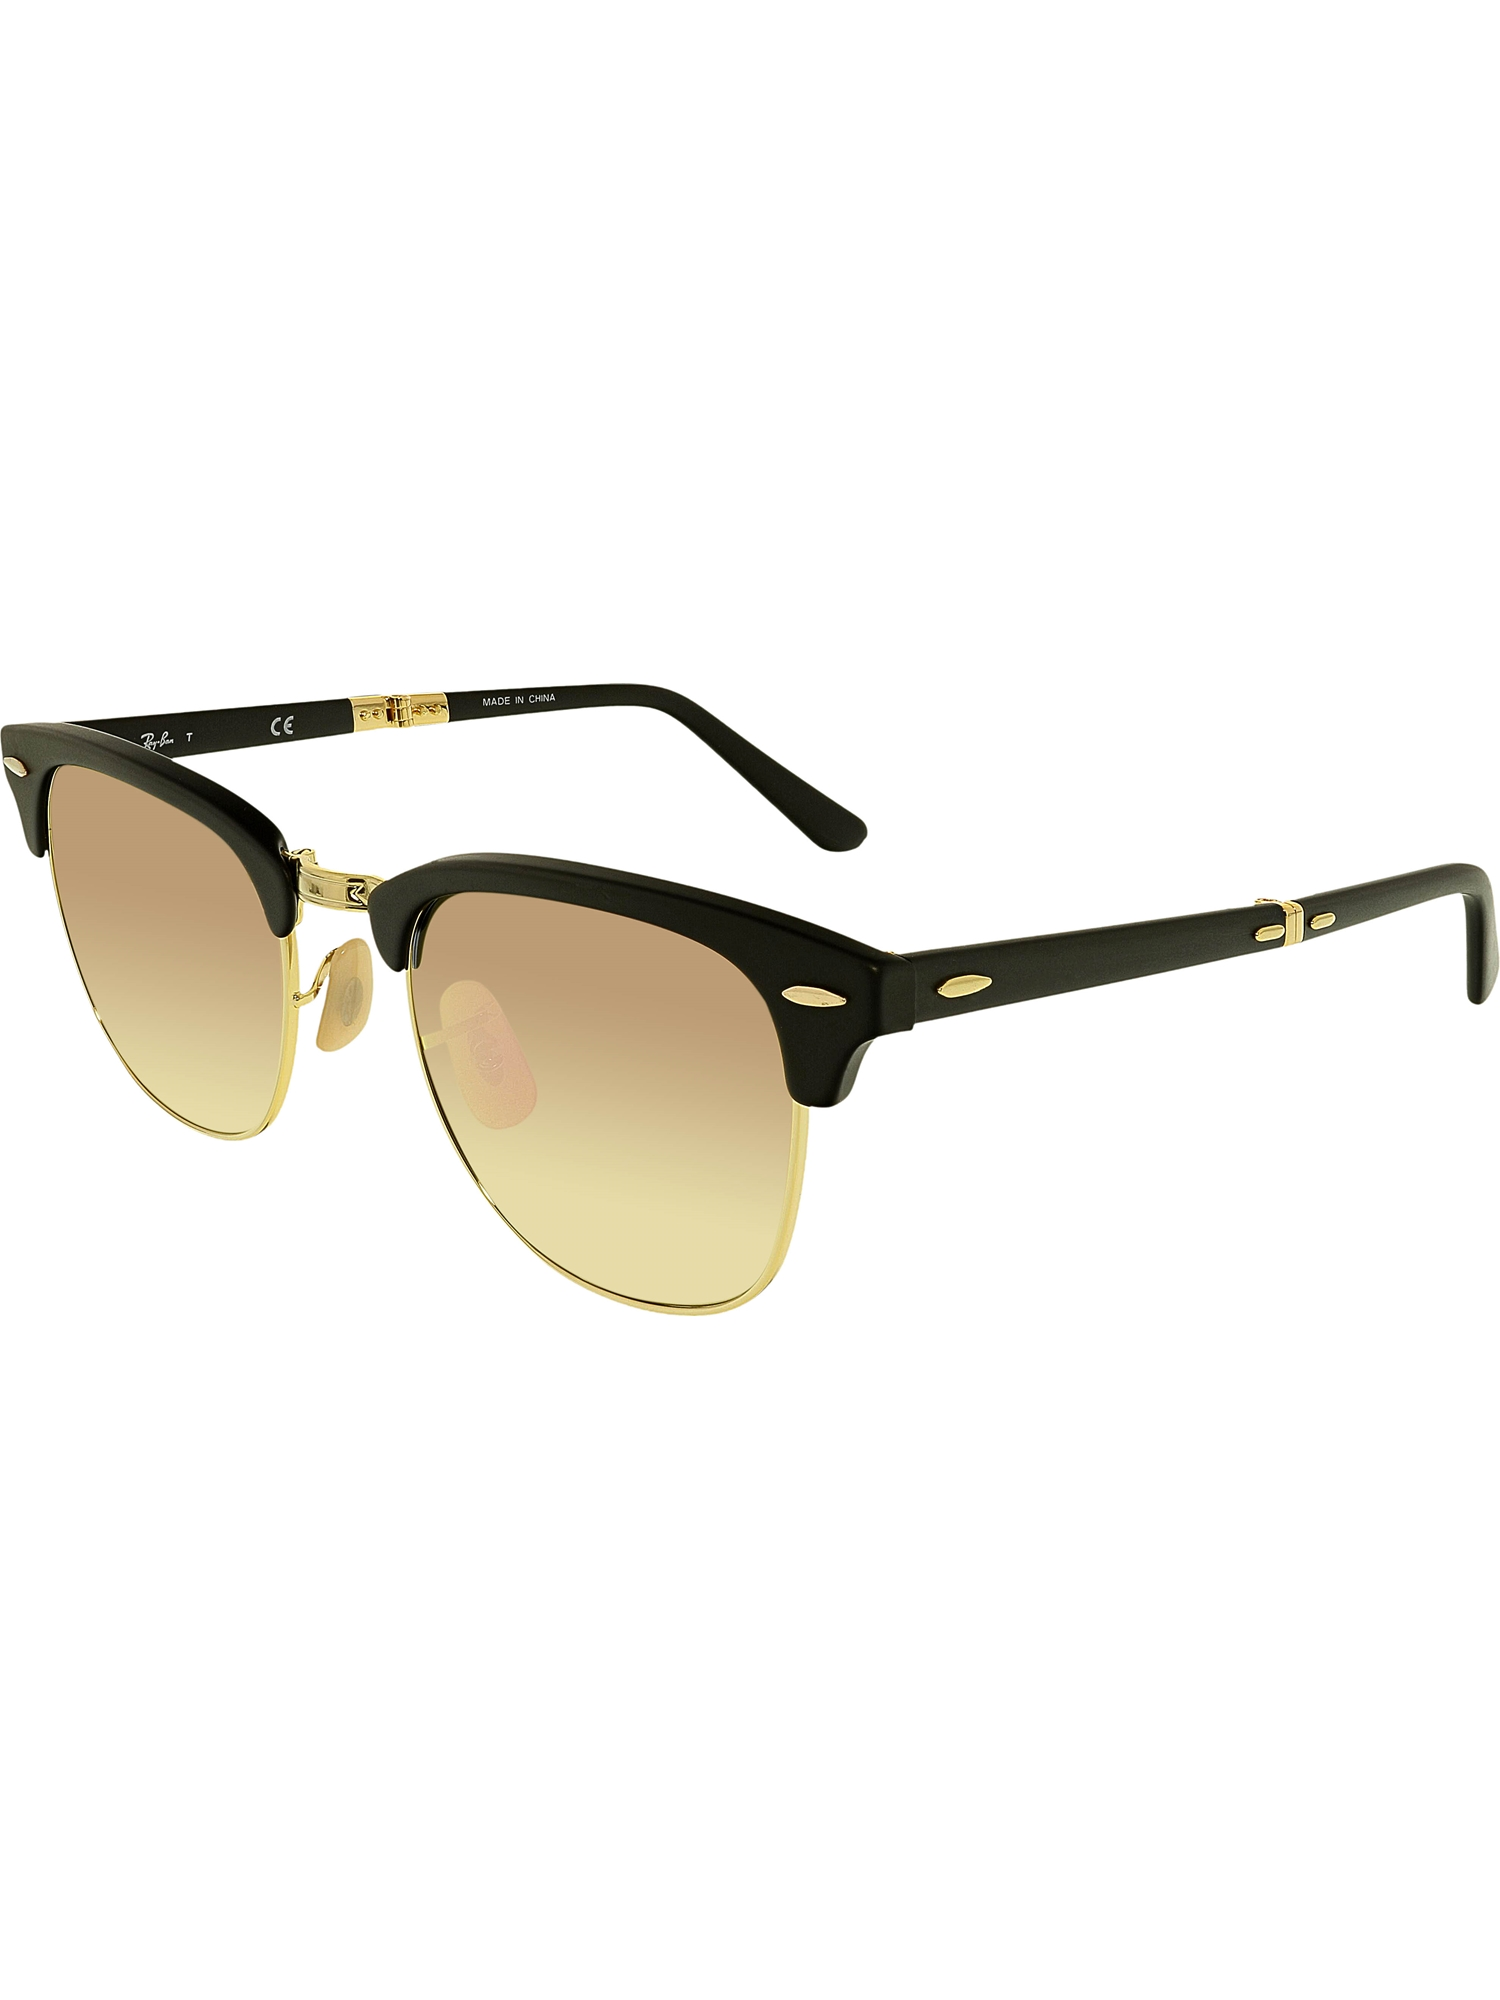 2b7ef464ede ... frame crystal green lens 901 51mm 3f1be a2450  coupon ray ban mens  gradient clubmaster folding rb2176 901s7o 51 black sunglasses be16f deda6